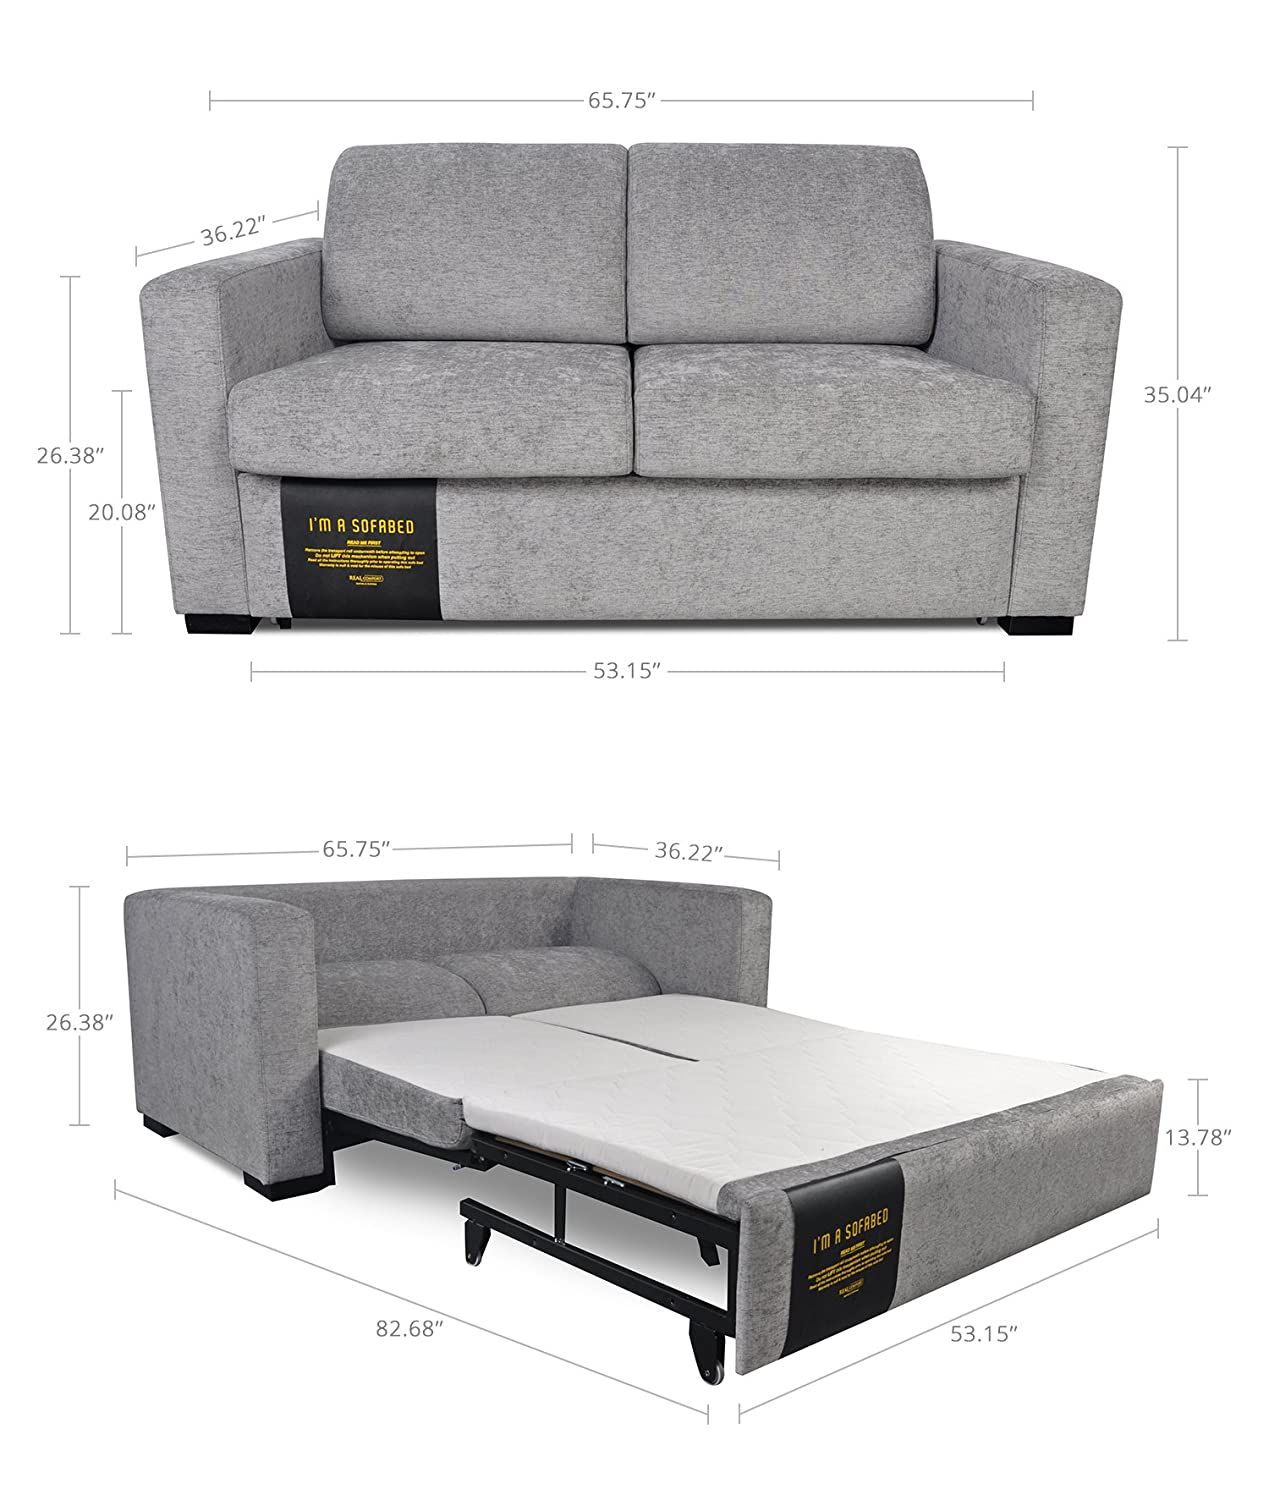 Amazon: Modern Functional Lift And Pull Out Loveseat Couch Sofa Bed  Futon Double, Queen Easy To Transform: Kitchen & Dining